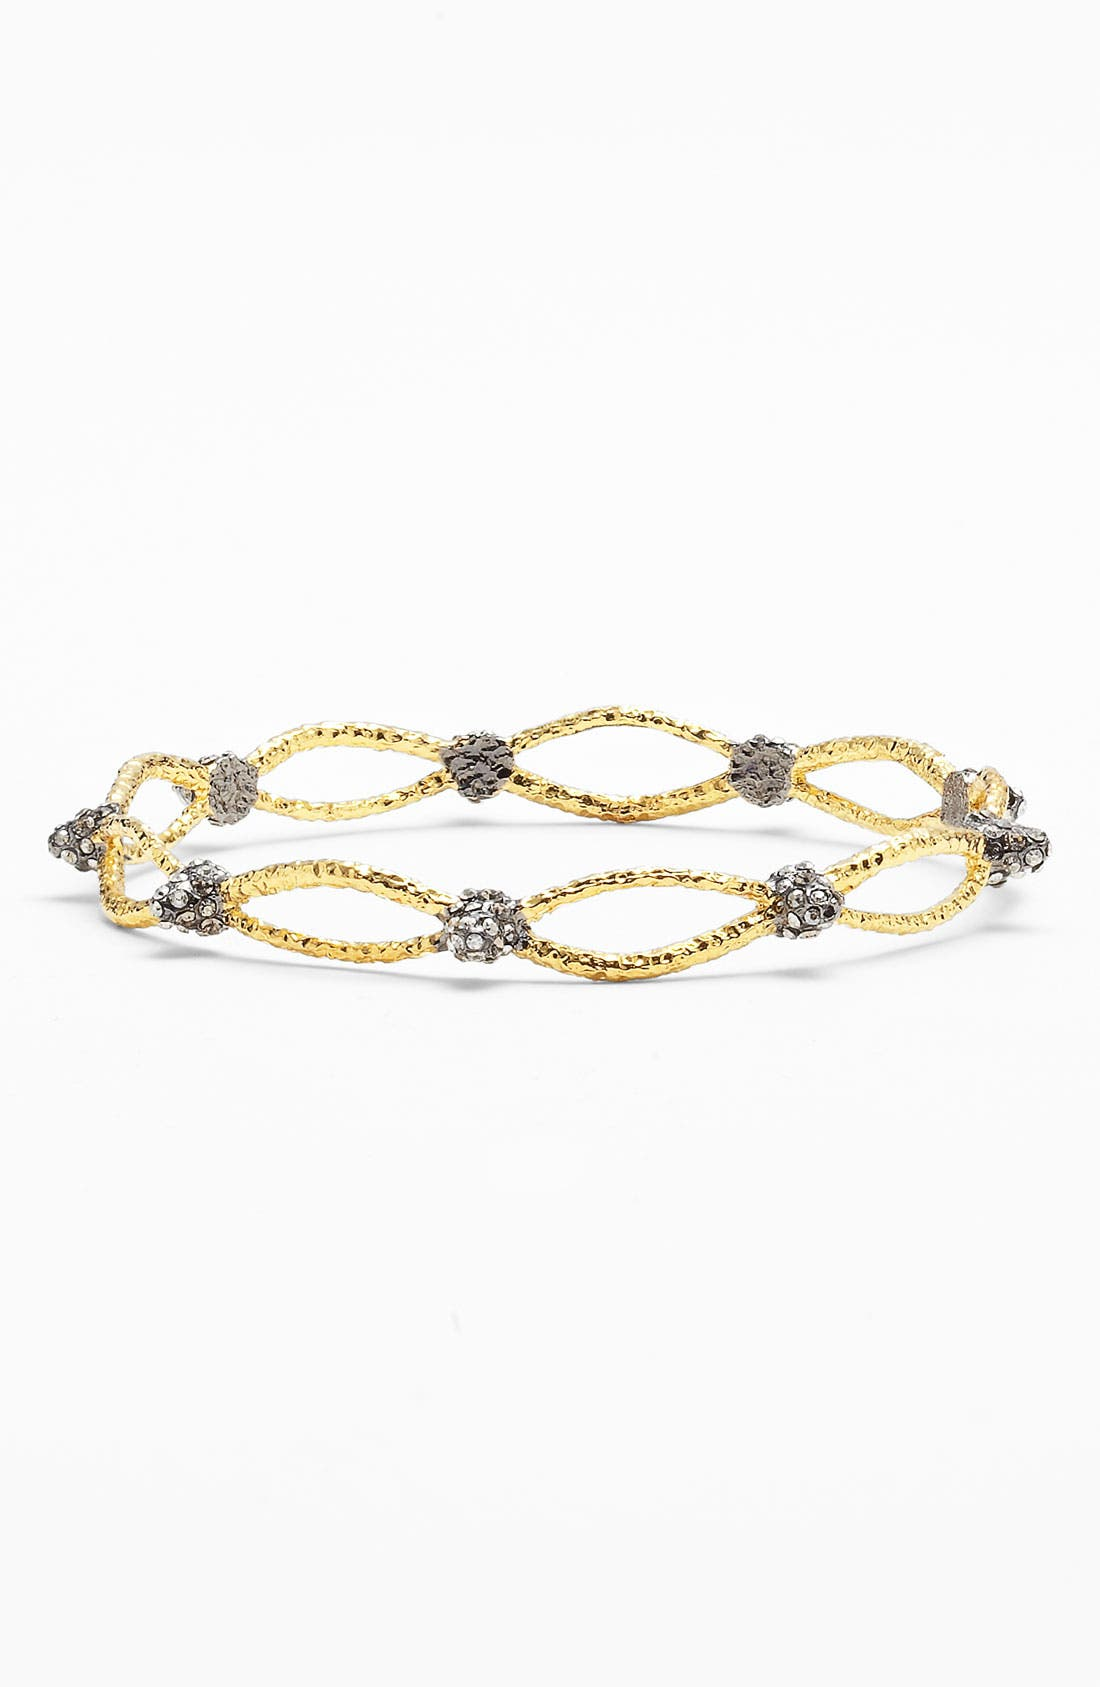 Main Image - Alexis Bittar 'Elements - Siyabona' Spiked Woven Bangle